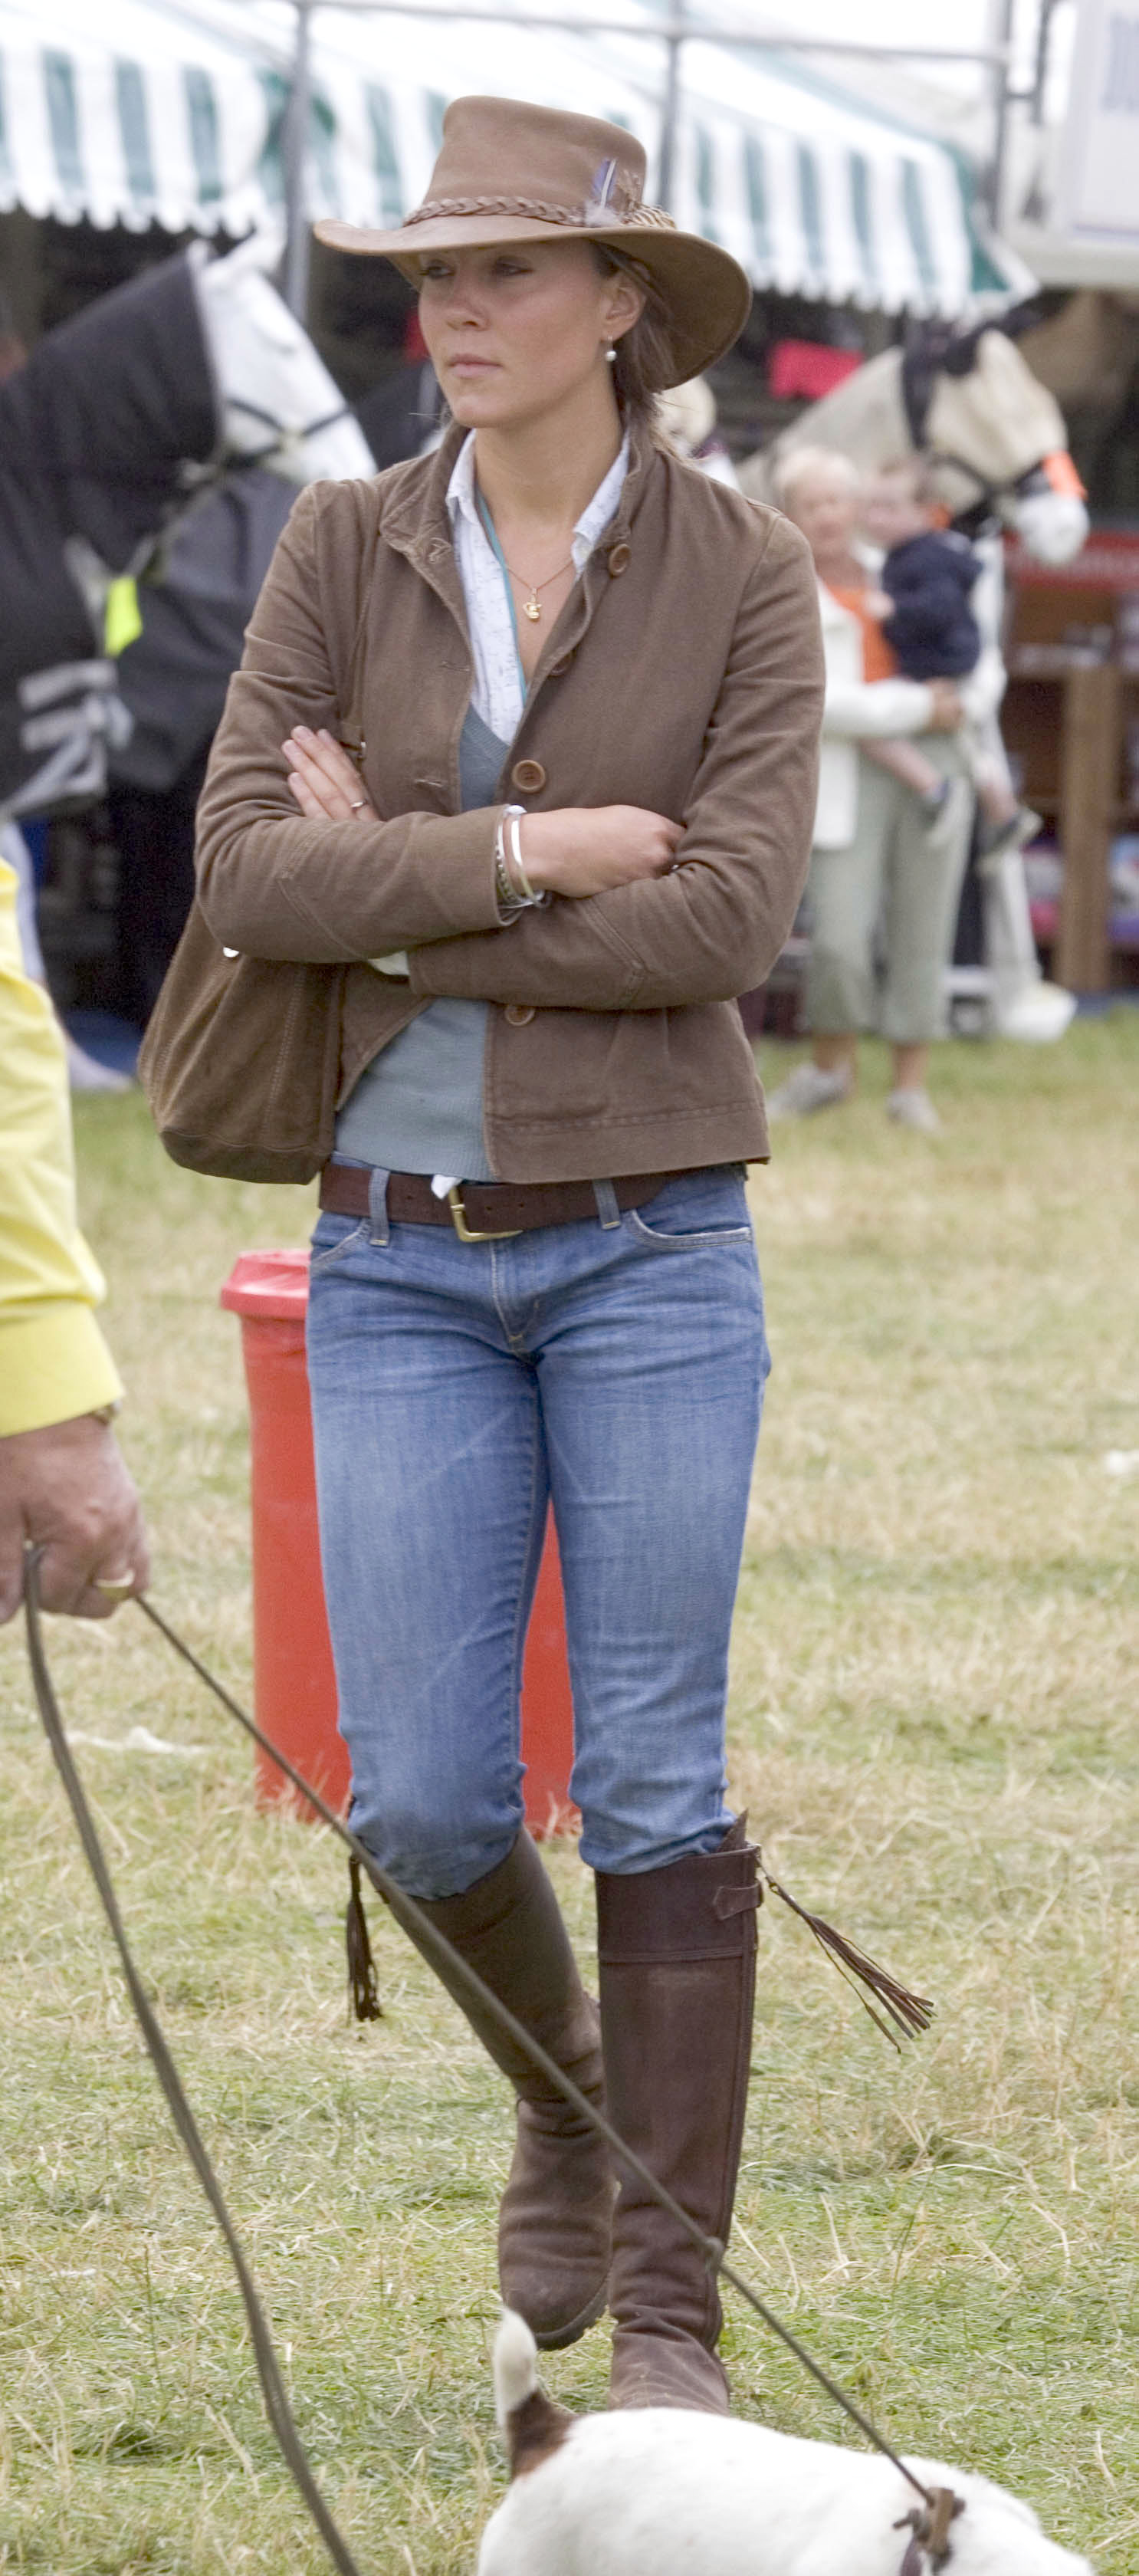 Kate Middleton, girlfriend of Prince William, attends the second day of the Gatcombe Park Festival of British Eventing at Gatcombe Park, on August 6, 2005 near Tetbury, England. (Photo by Anwar Hussein/WireImage)